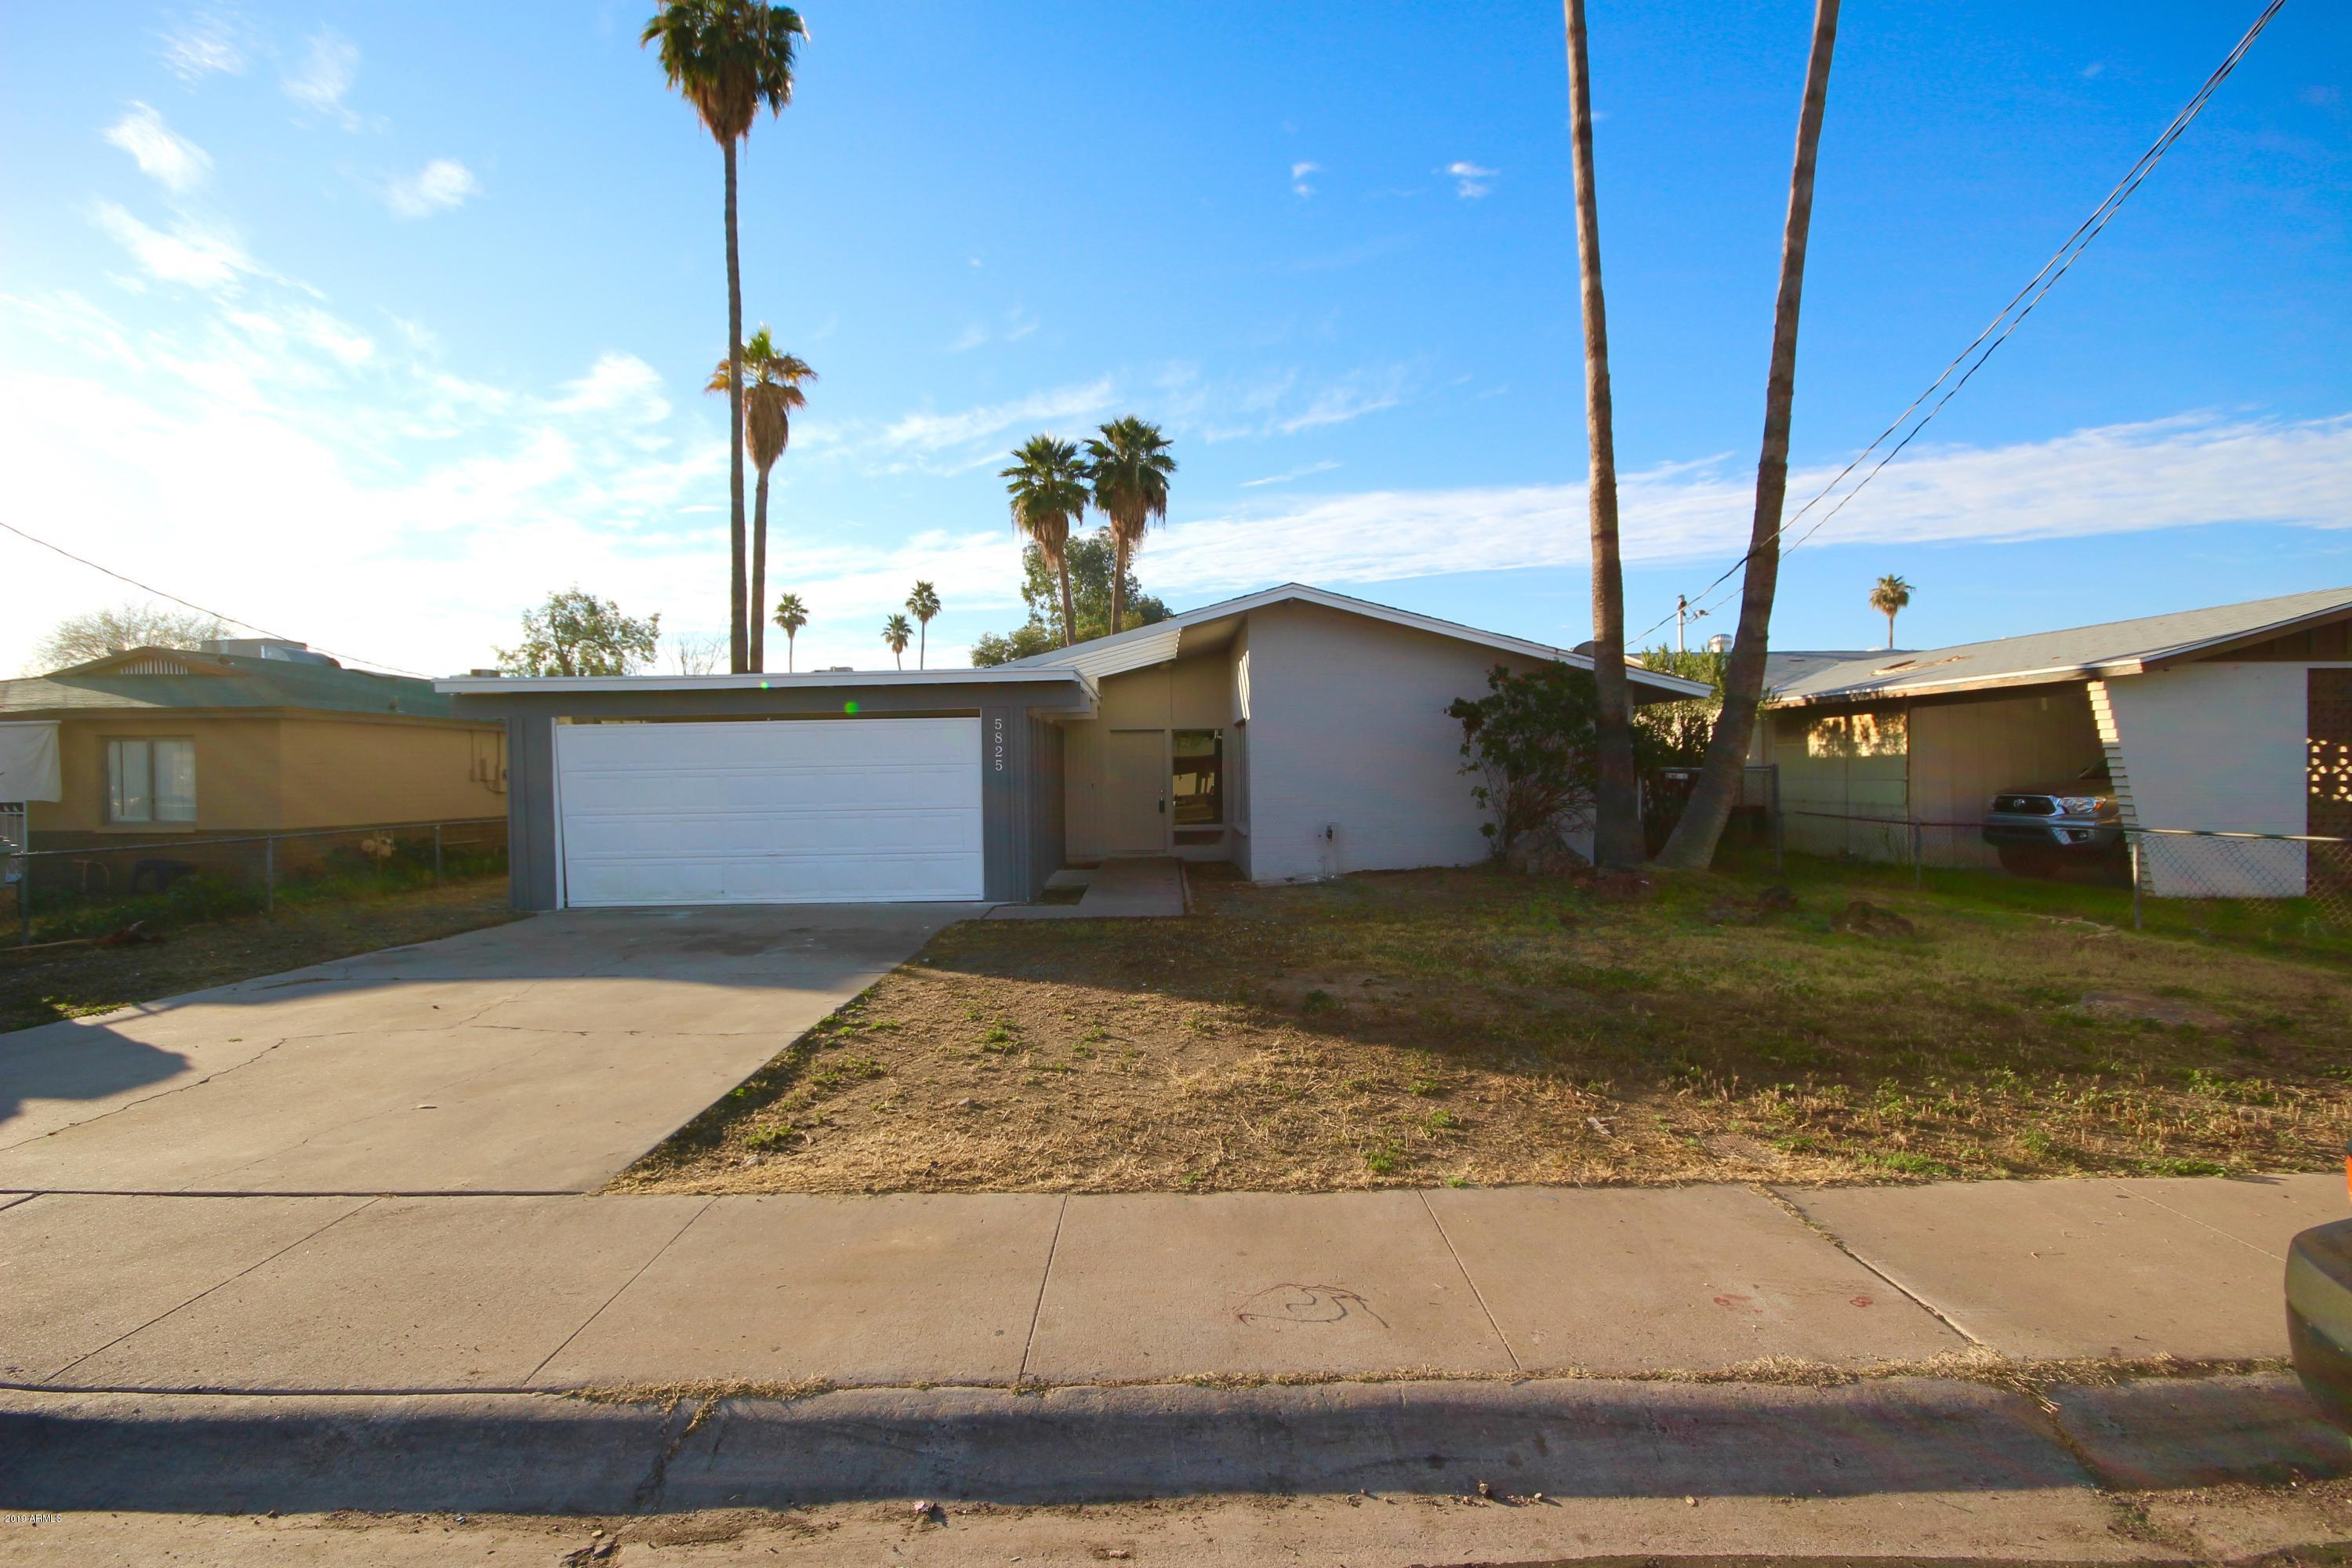 Photo of 5825 W CITRUS Way, Glendale, AZ 85301